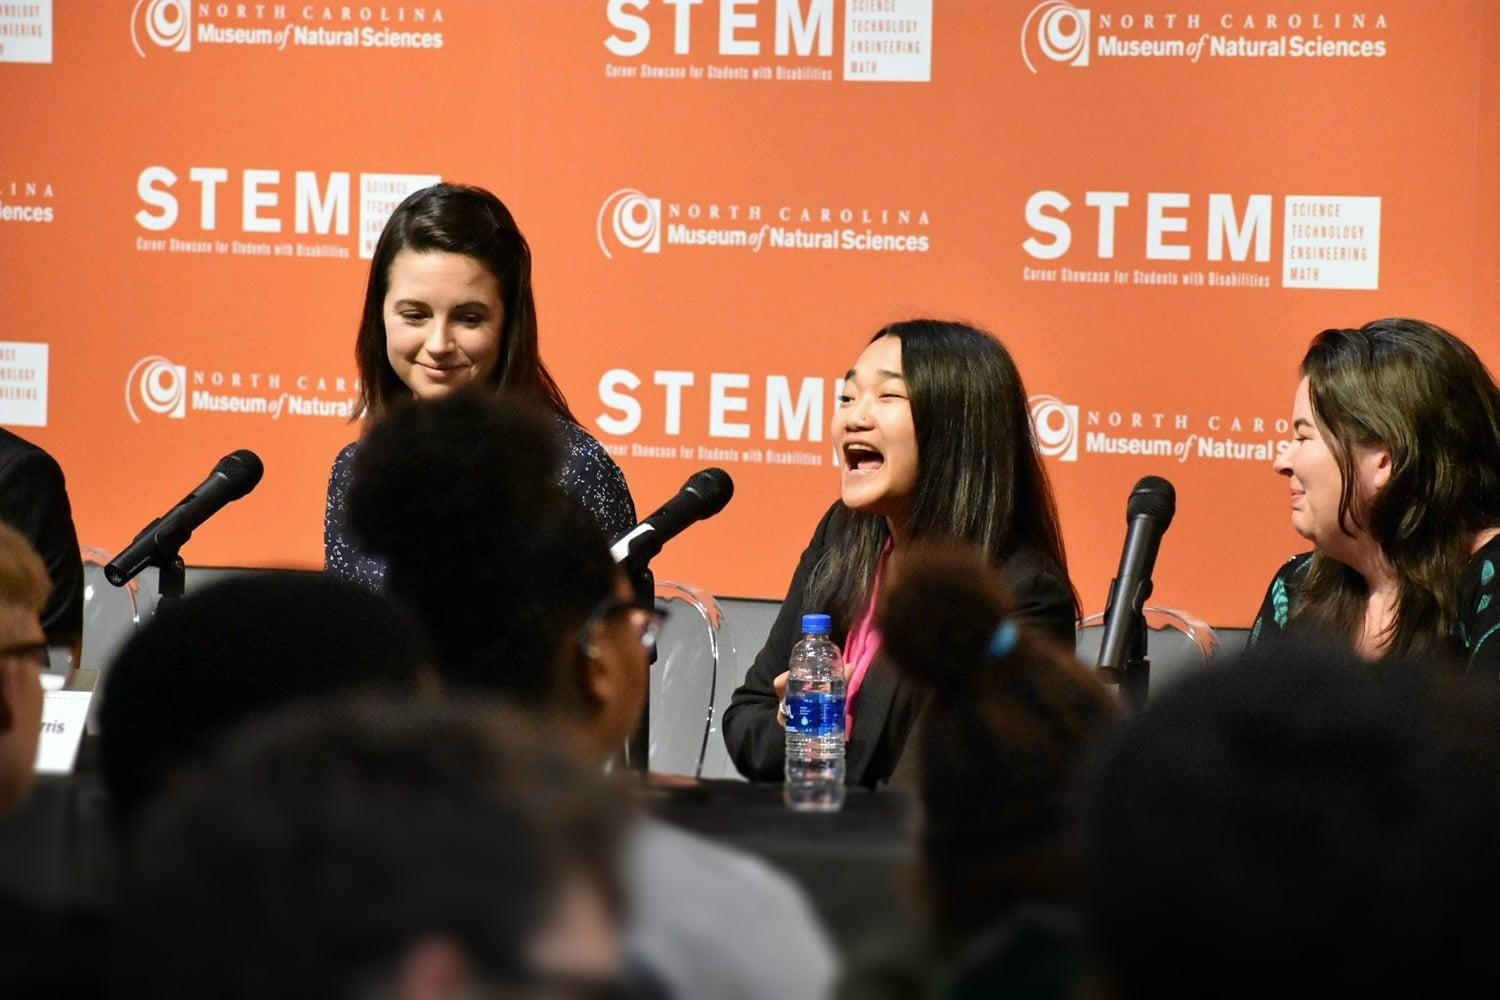 Girl speaking at STEM event